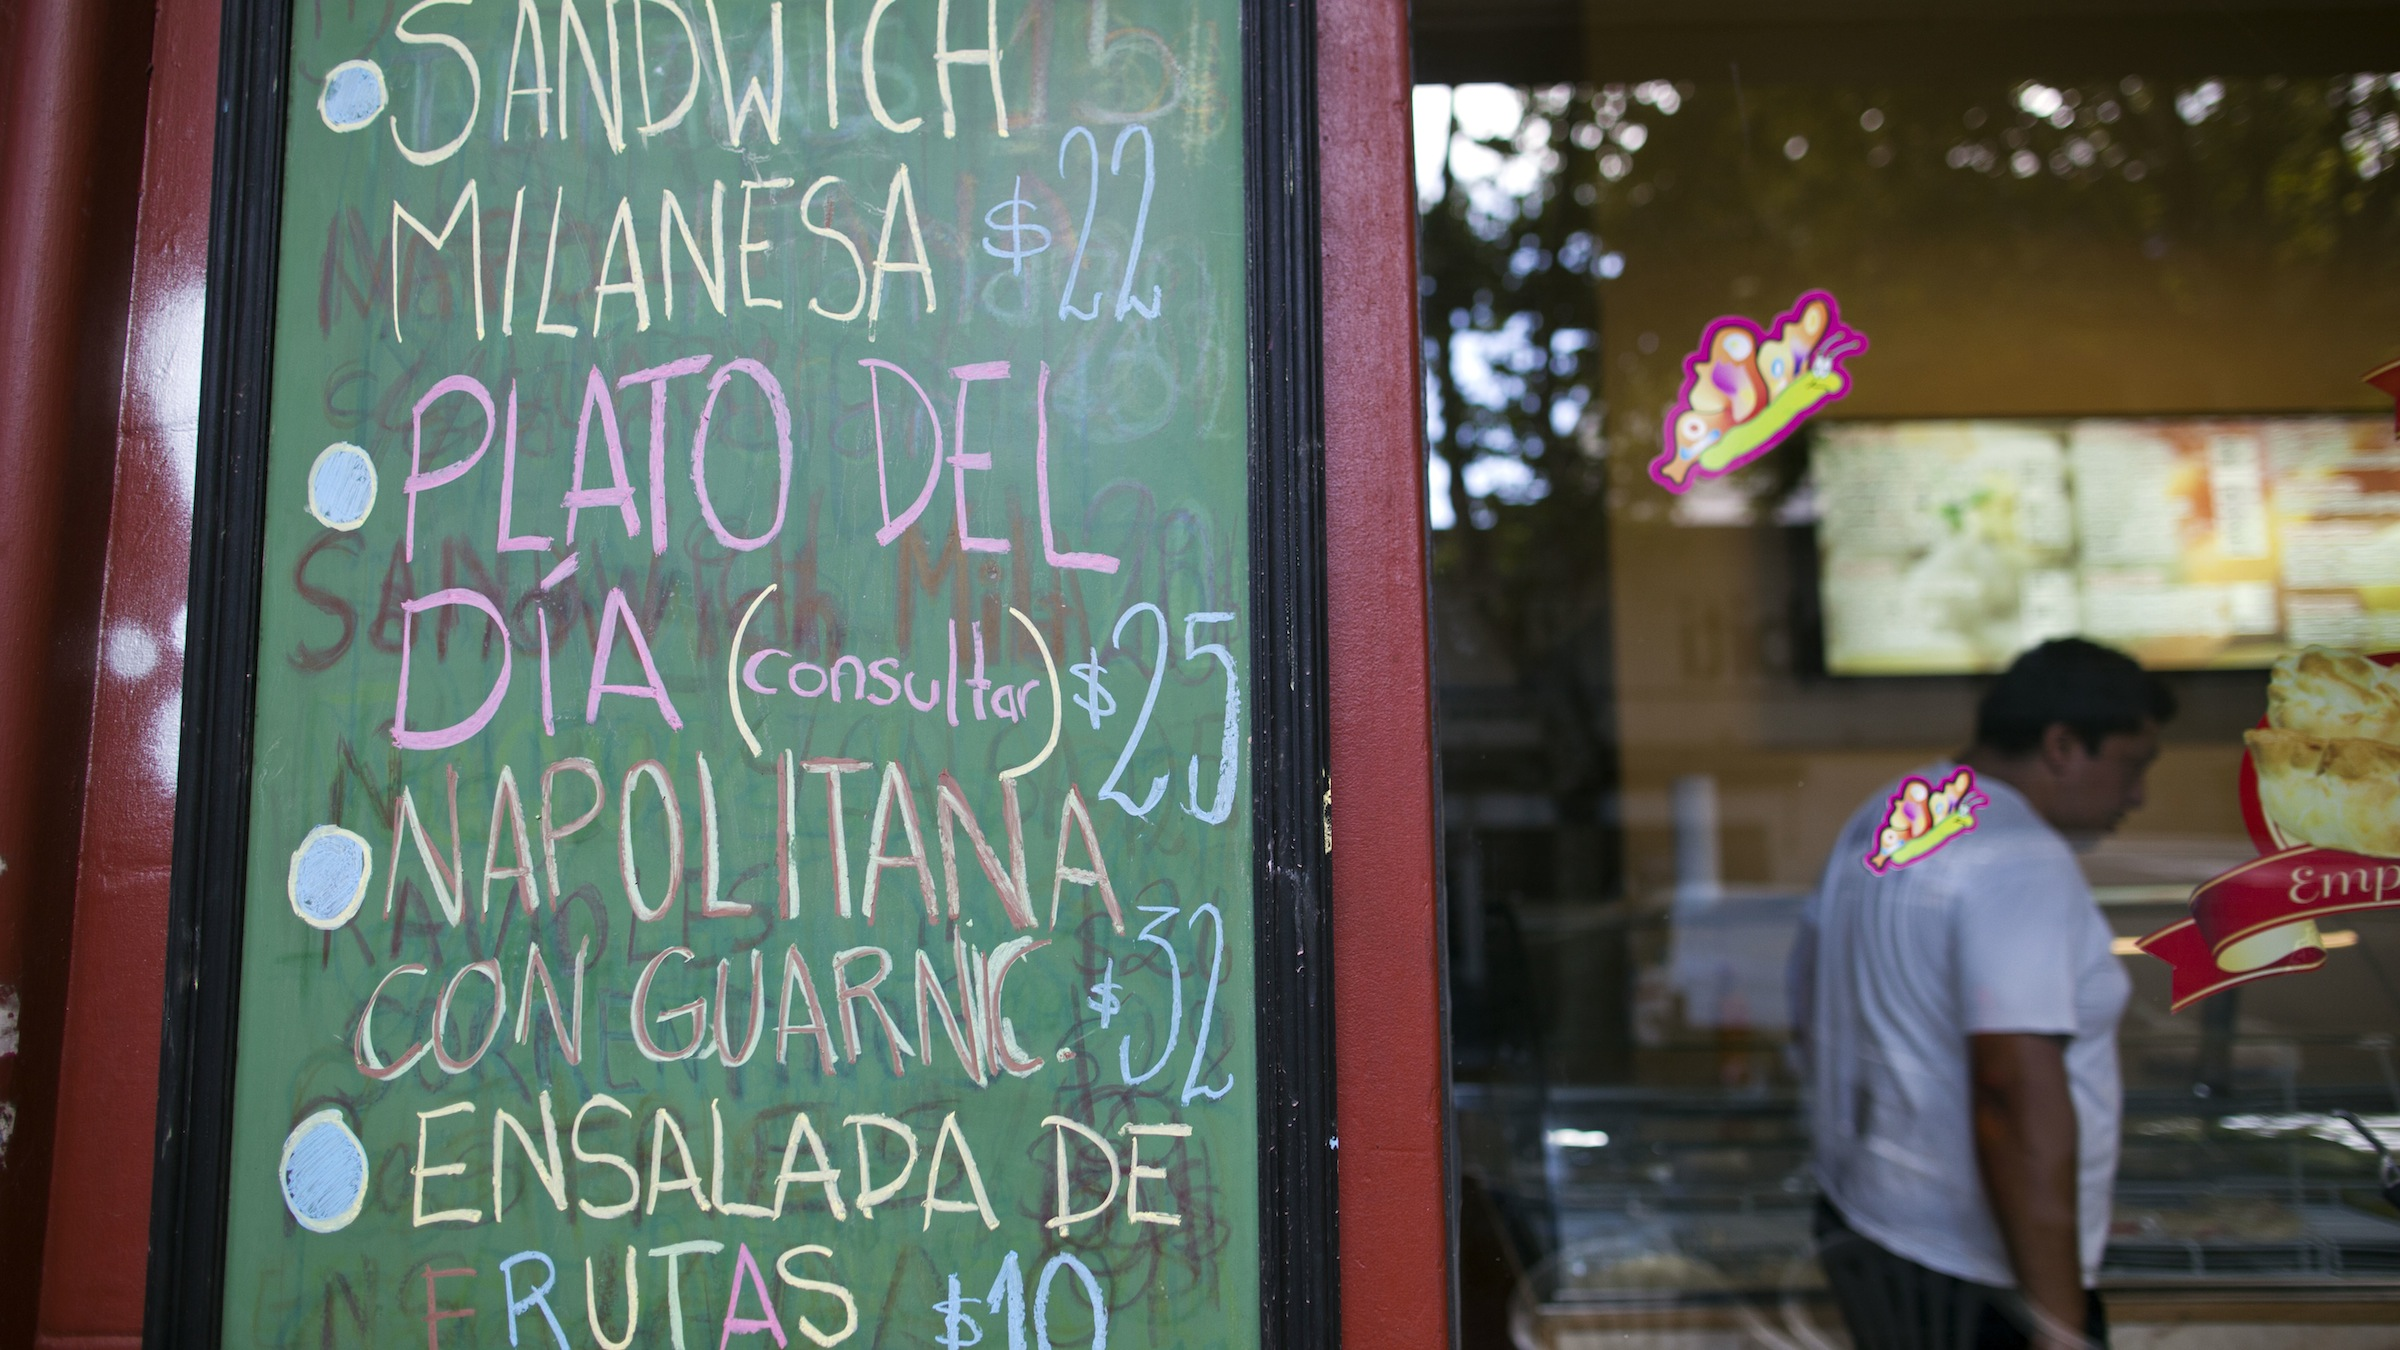 A deli sign advertises their prices in Buenos Aires, Argentina, Thursday, Jan. 17, 2013. It advertises a meat sandwich for 22 pesos, the meal of the day for 25 pesos, a meat plate with ham and cheese for 32 pesos and a fruit salad for 10 pesos.  The nation's currency's official rate is 4.96 pesos per 1 US dollar, and the black market rate is about 7.50 pesos per 1 US dollar.  Close government allies have given up defending the official statistics service, known as INDEC, which announced Monday that Argentinaís annual inflation was just 10.8 percent in 2012. Private economists have estimated that Argentinaís inflation was actually 26 percent or more, making it the worst in all of Latin America. (AP Photo/Natacha Pisarenko)